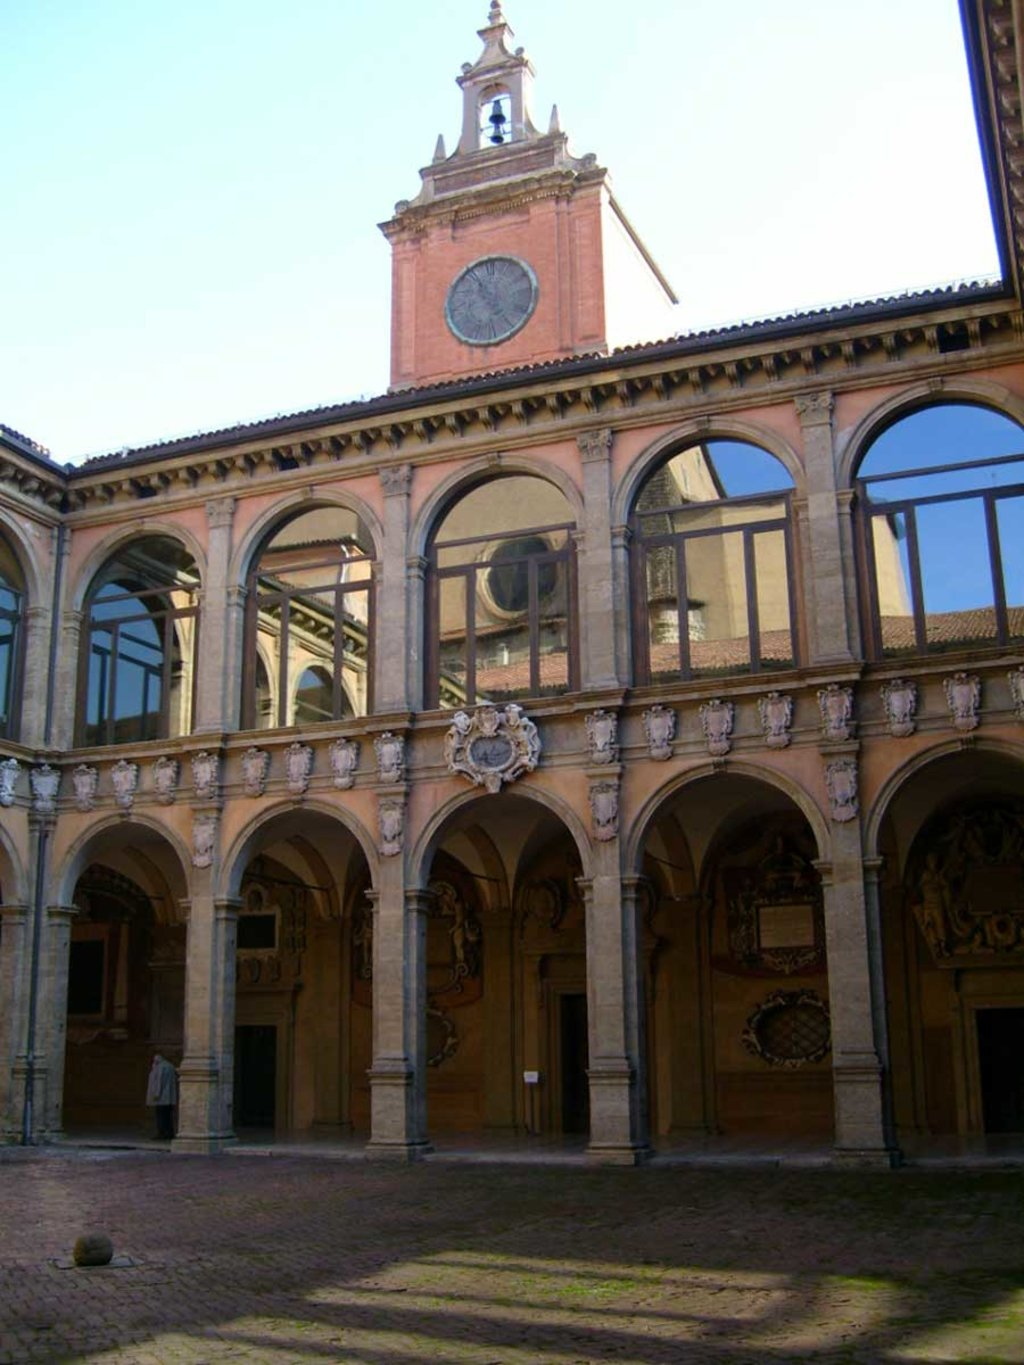 Il Palazzo dell'Archiginnasio - By Luca Borghi (Own work)  , via Wikimedia Commons